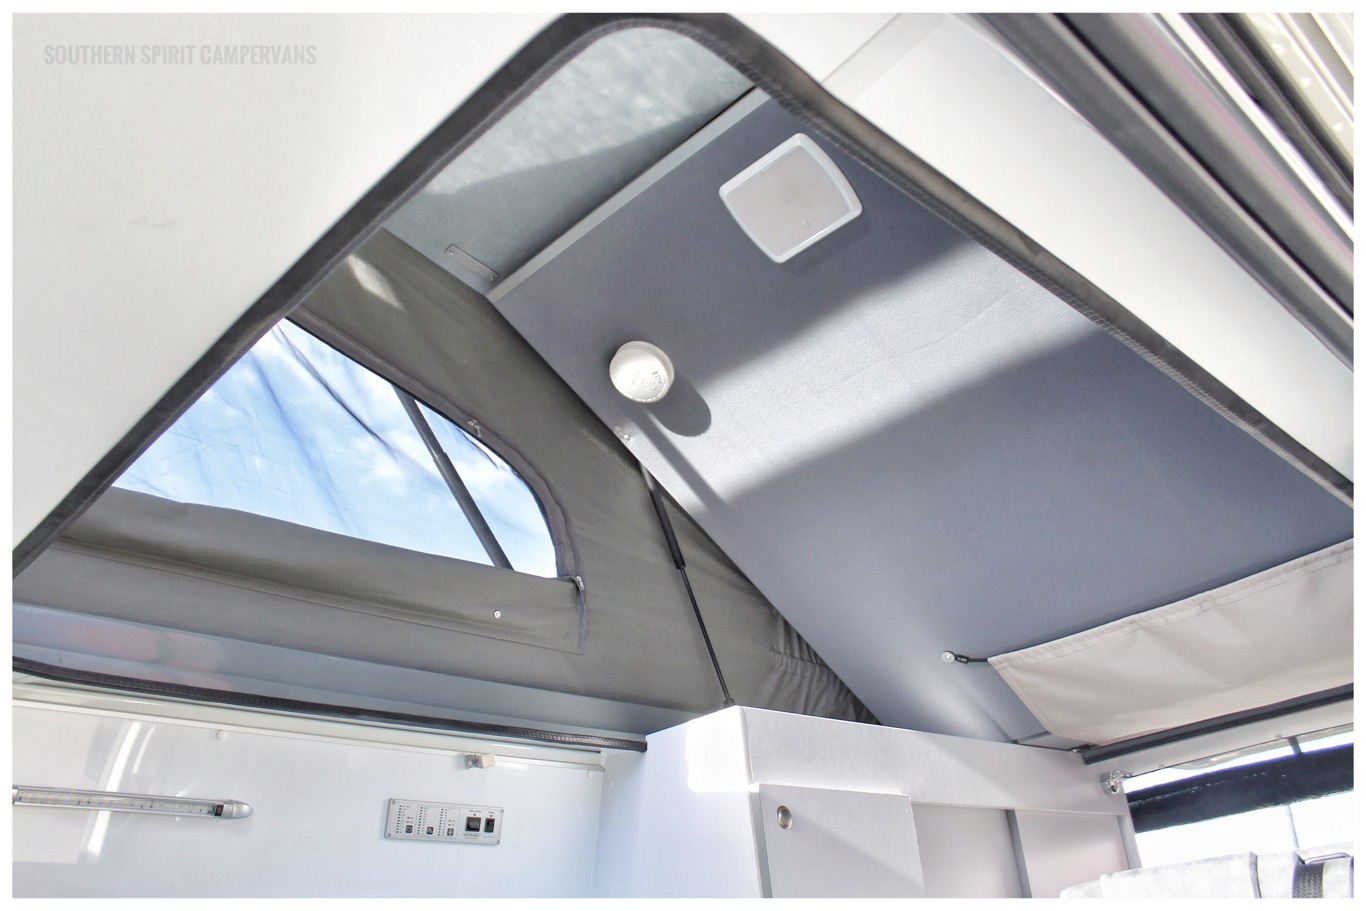 Hiace roof, easy to lift and upper bed also lifting out of the way when not in use